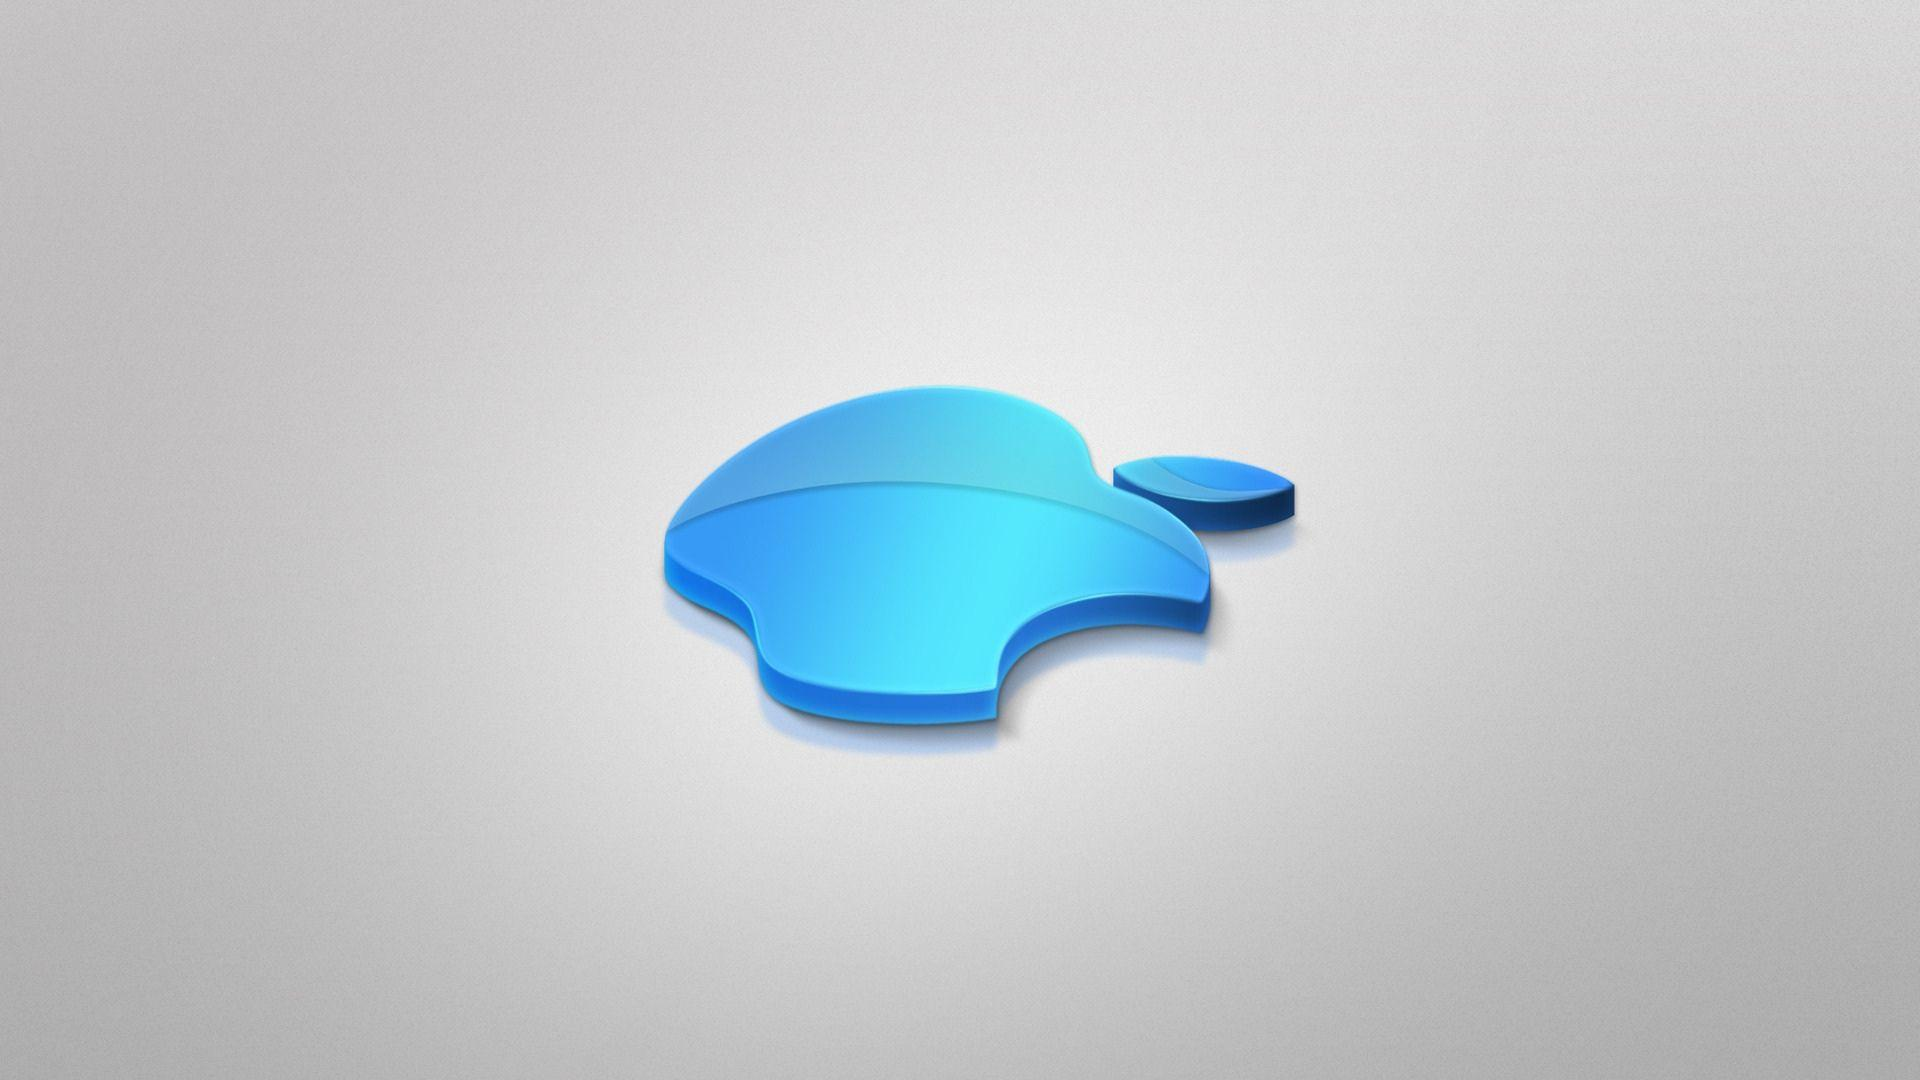 Apple Blue 3d 1080p Wallpapers